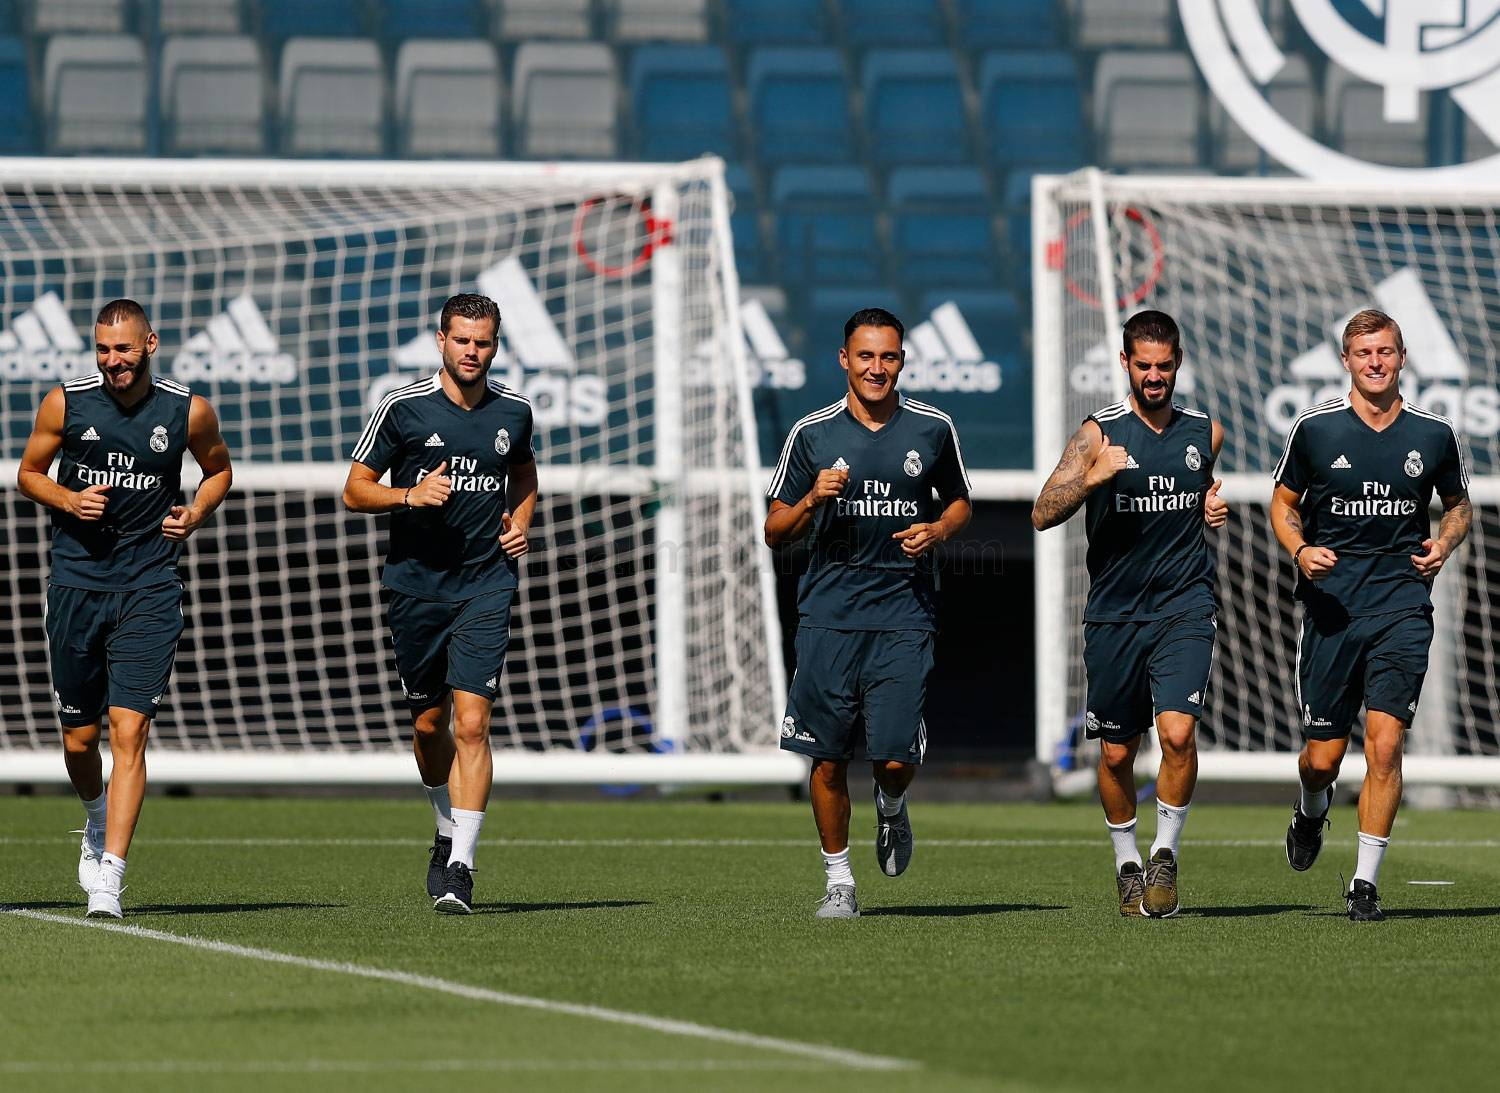 Real Madrid - Entrenamiento del Real Madrid - 20-08-2018